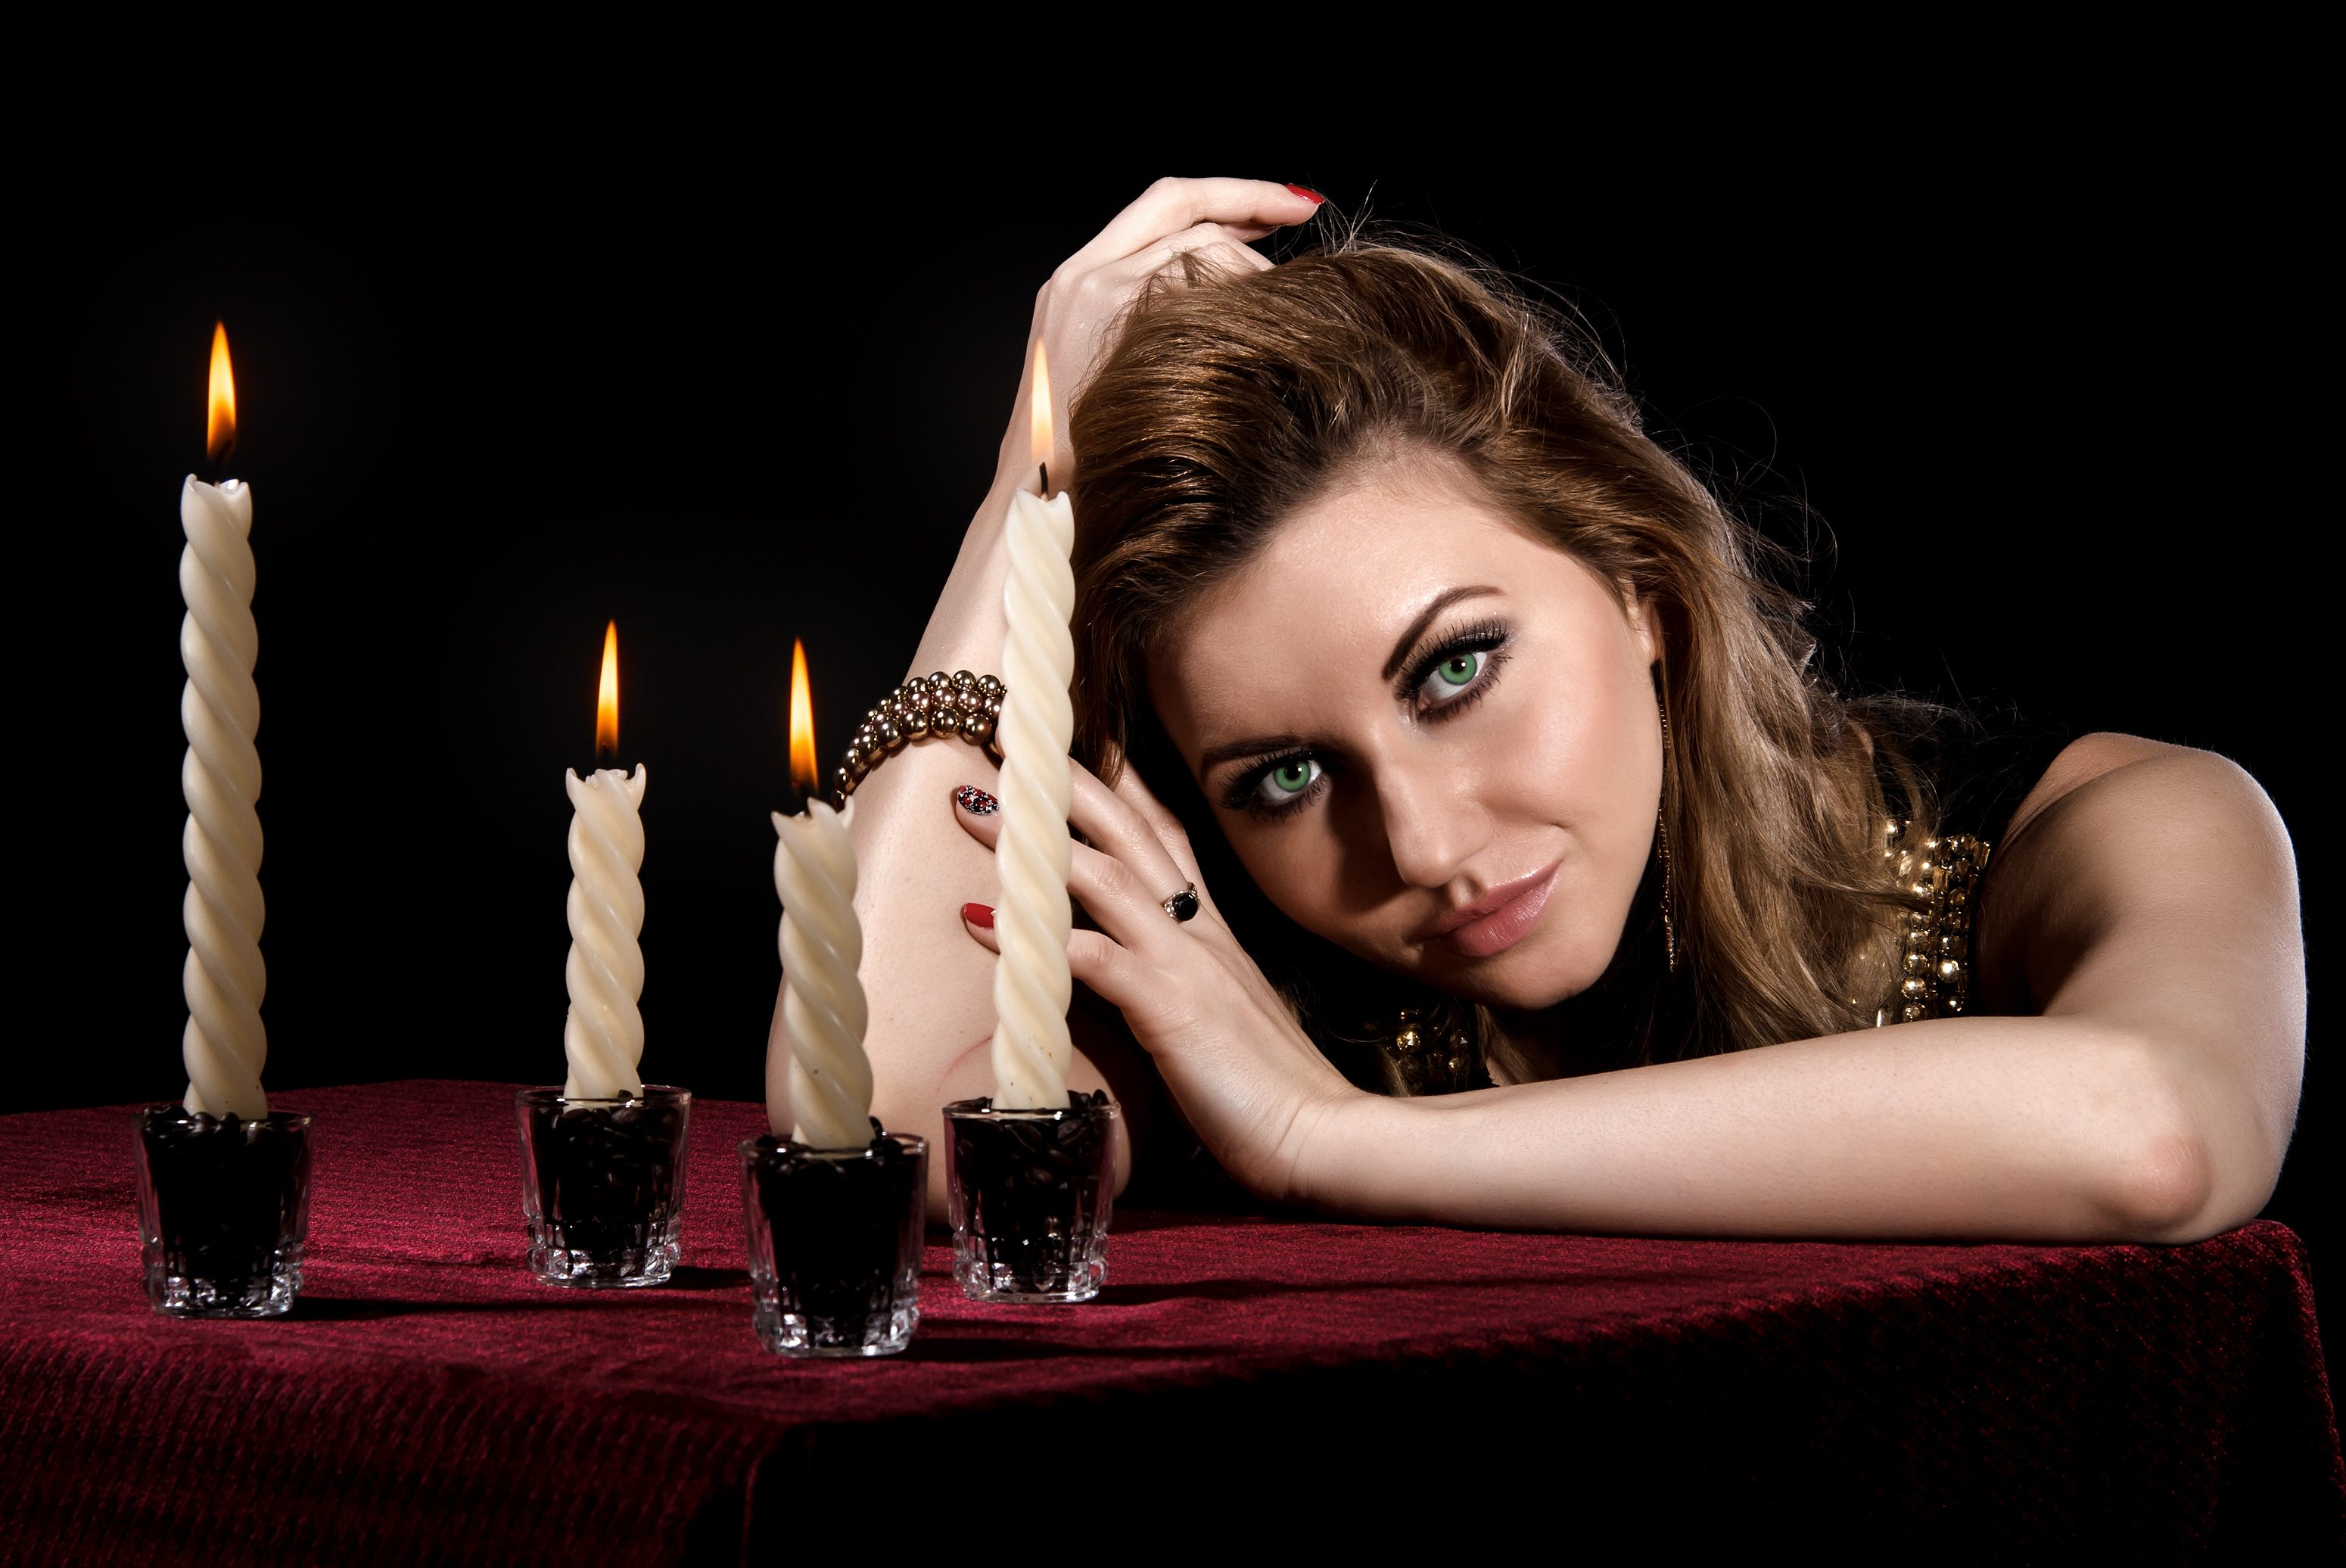 Spells Of Magic - Learn Witchcraft, Wicca and Magic